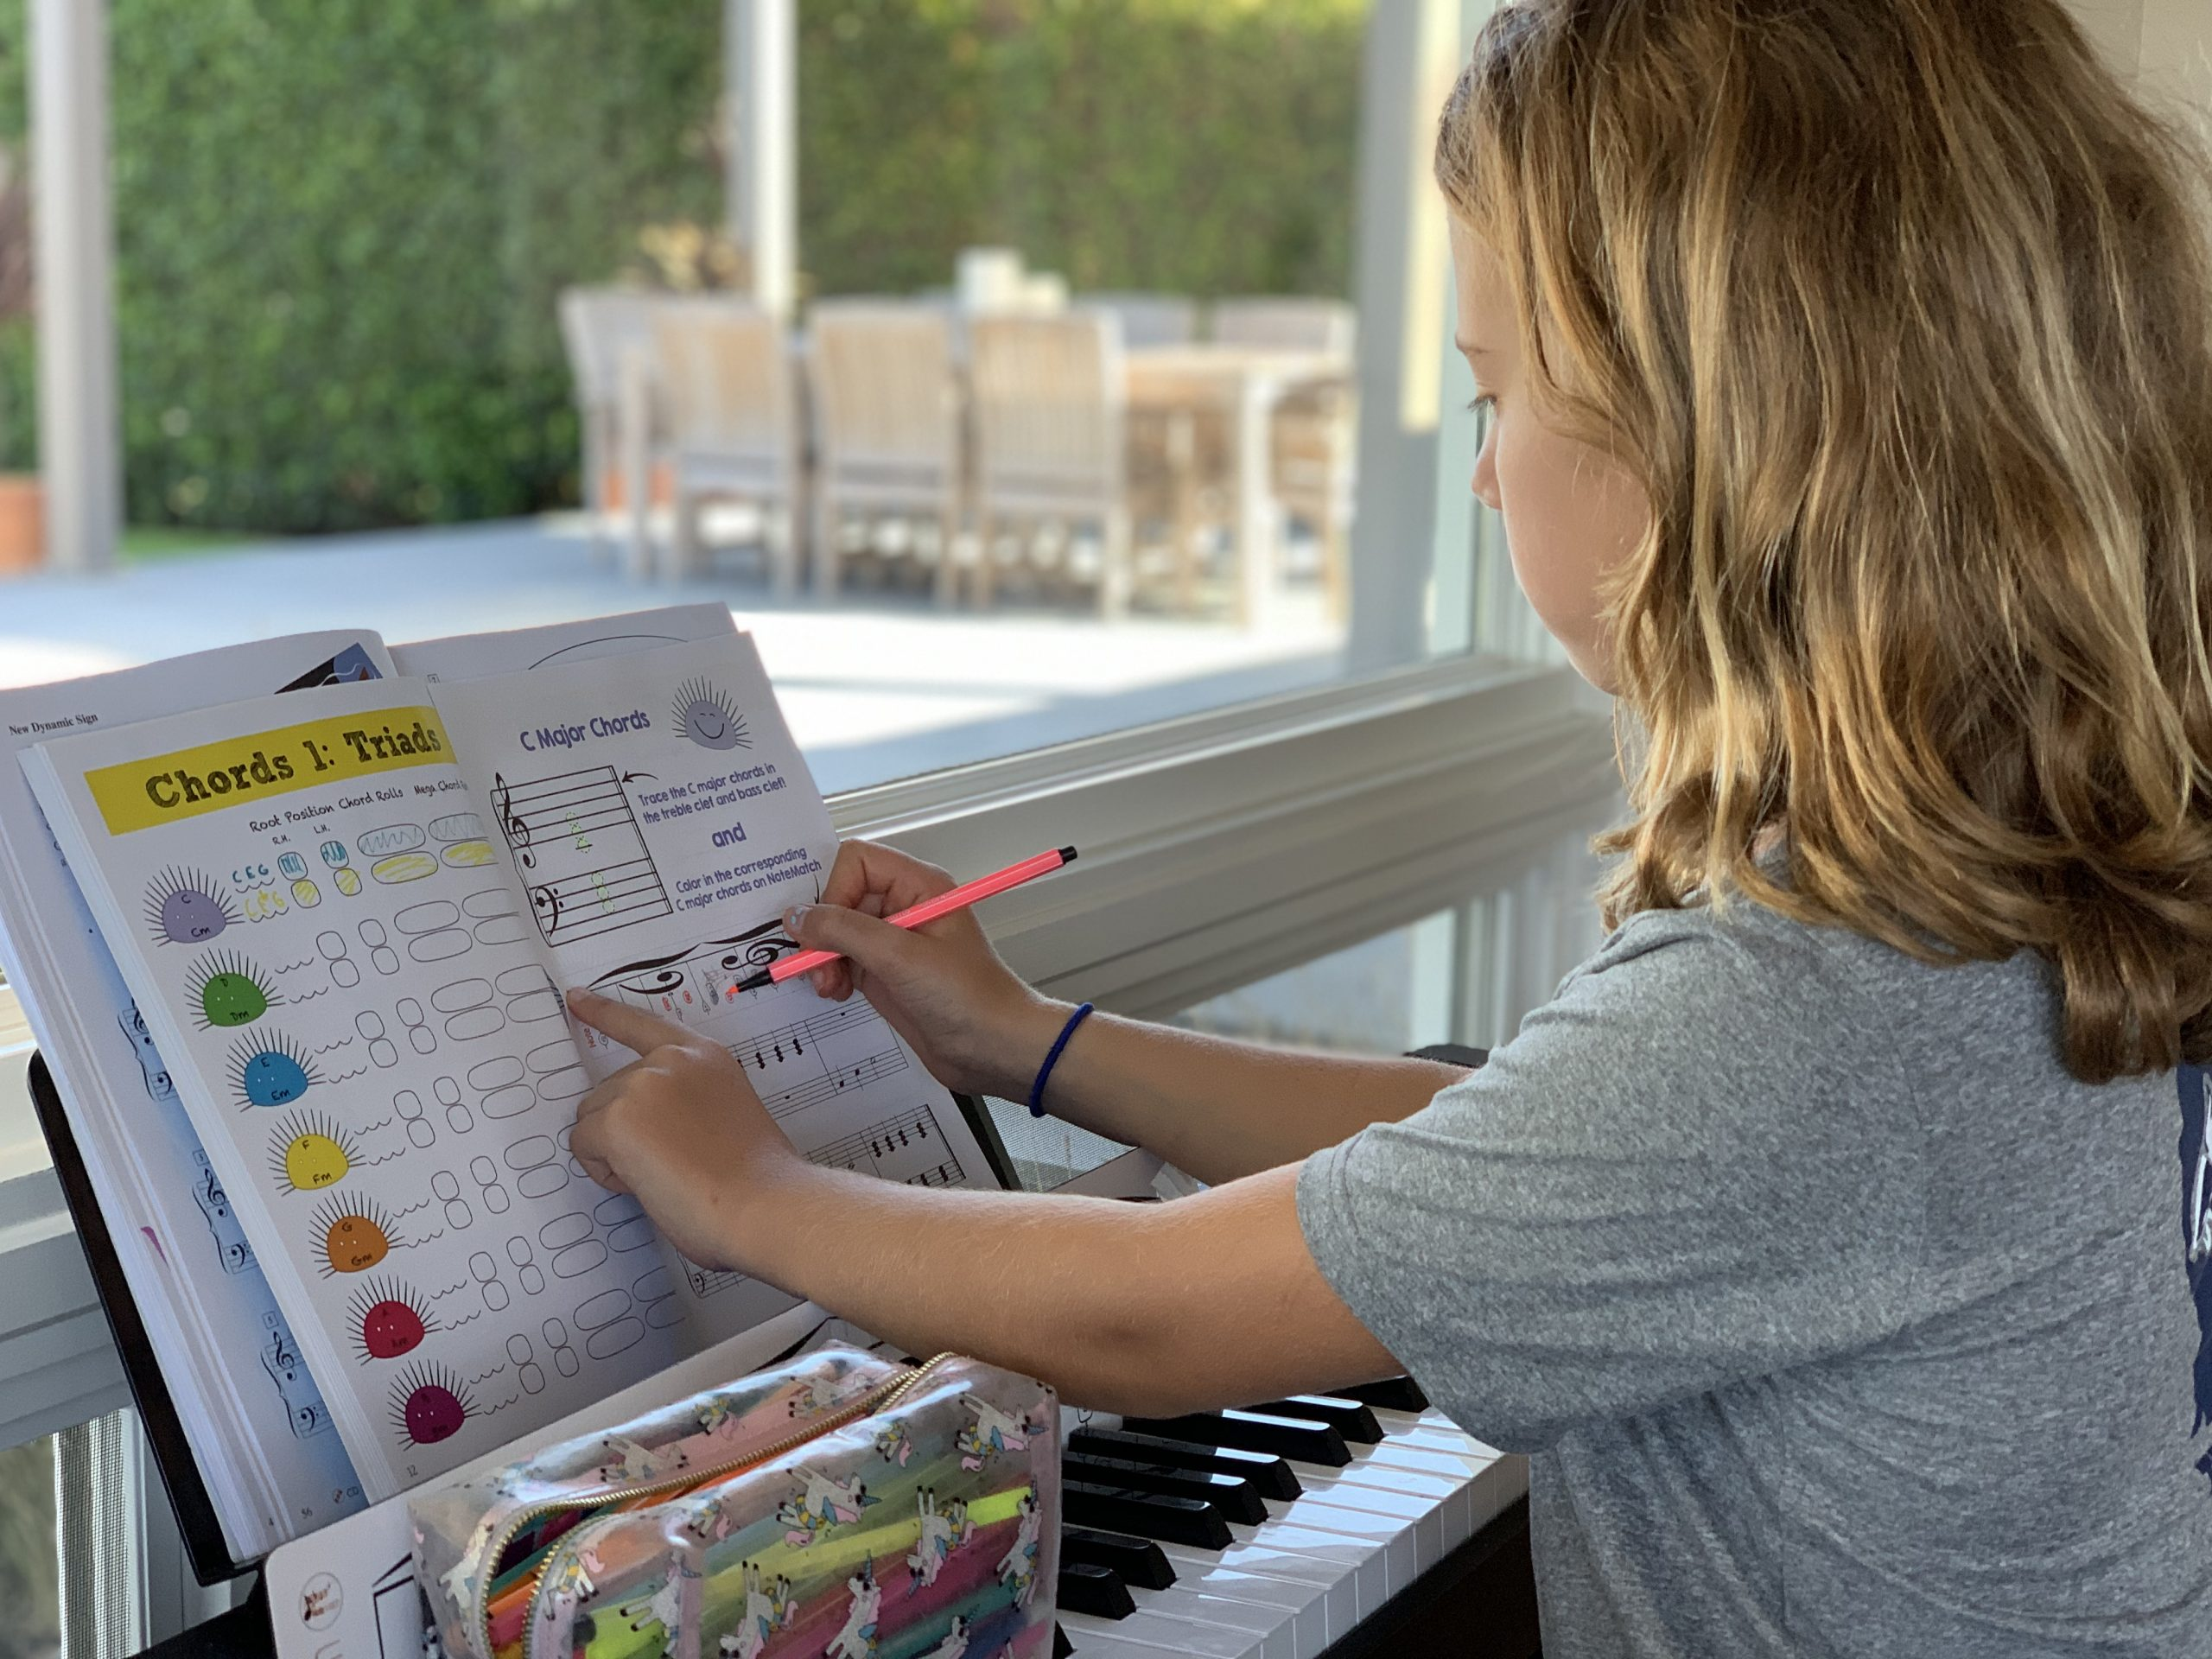 Student drawing in the chords on her mini notematch within the chords 1 book